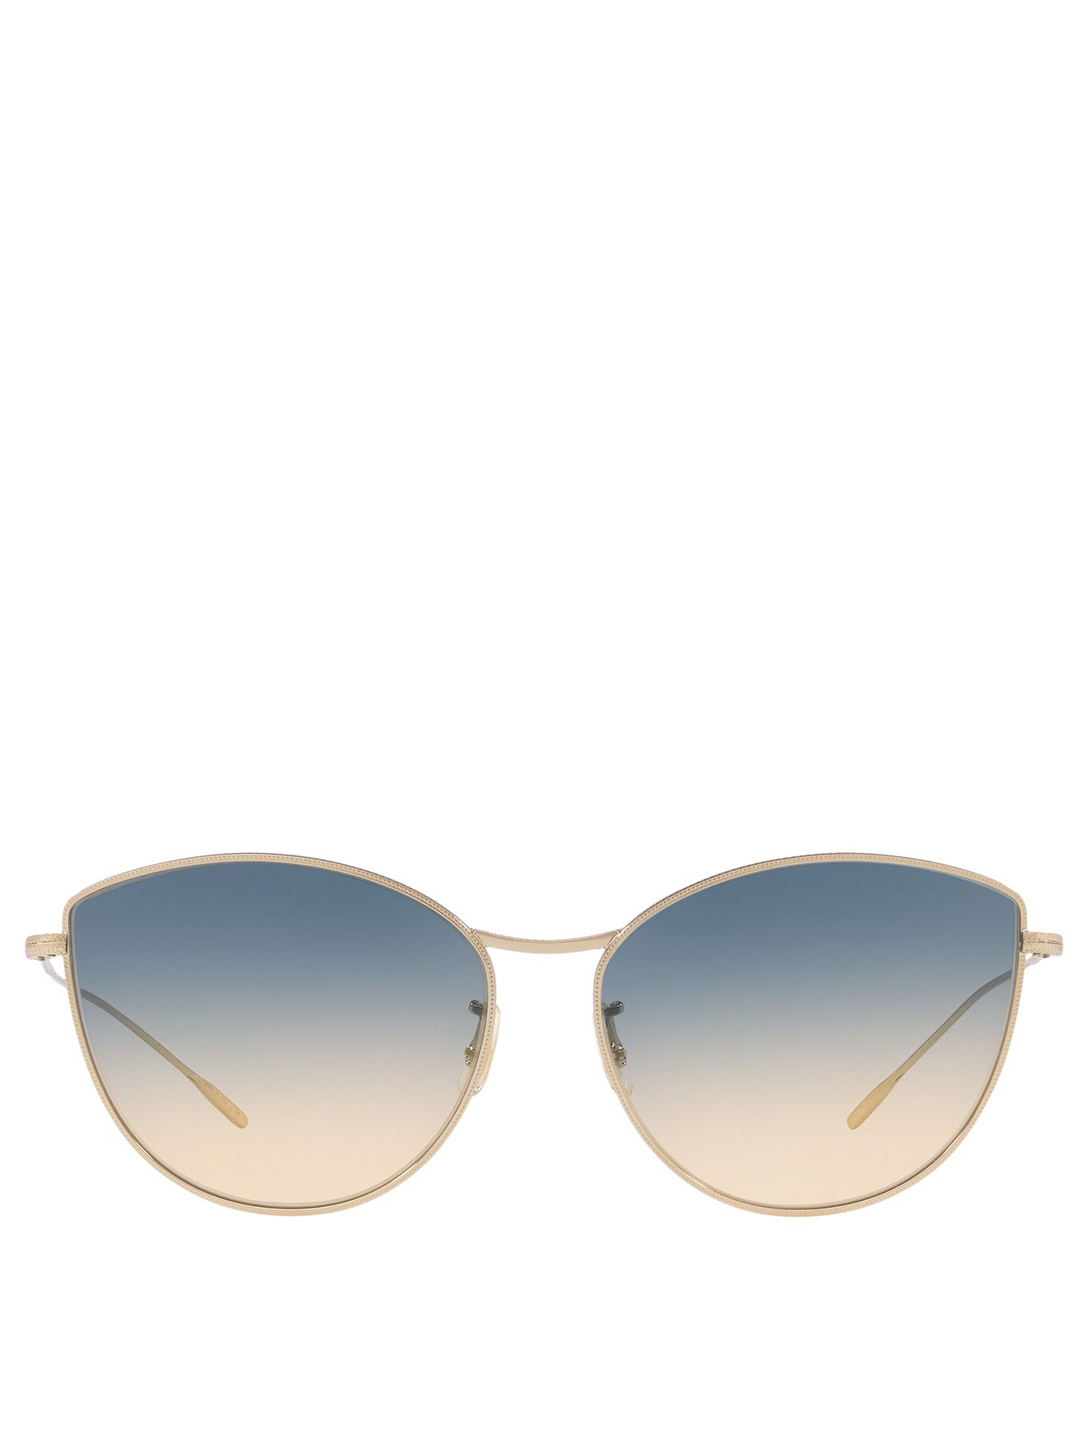 OLIVER PEOPLES Rayette Cat-Eye Sunglasses Women's Metallic